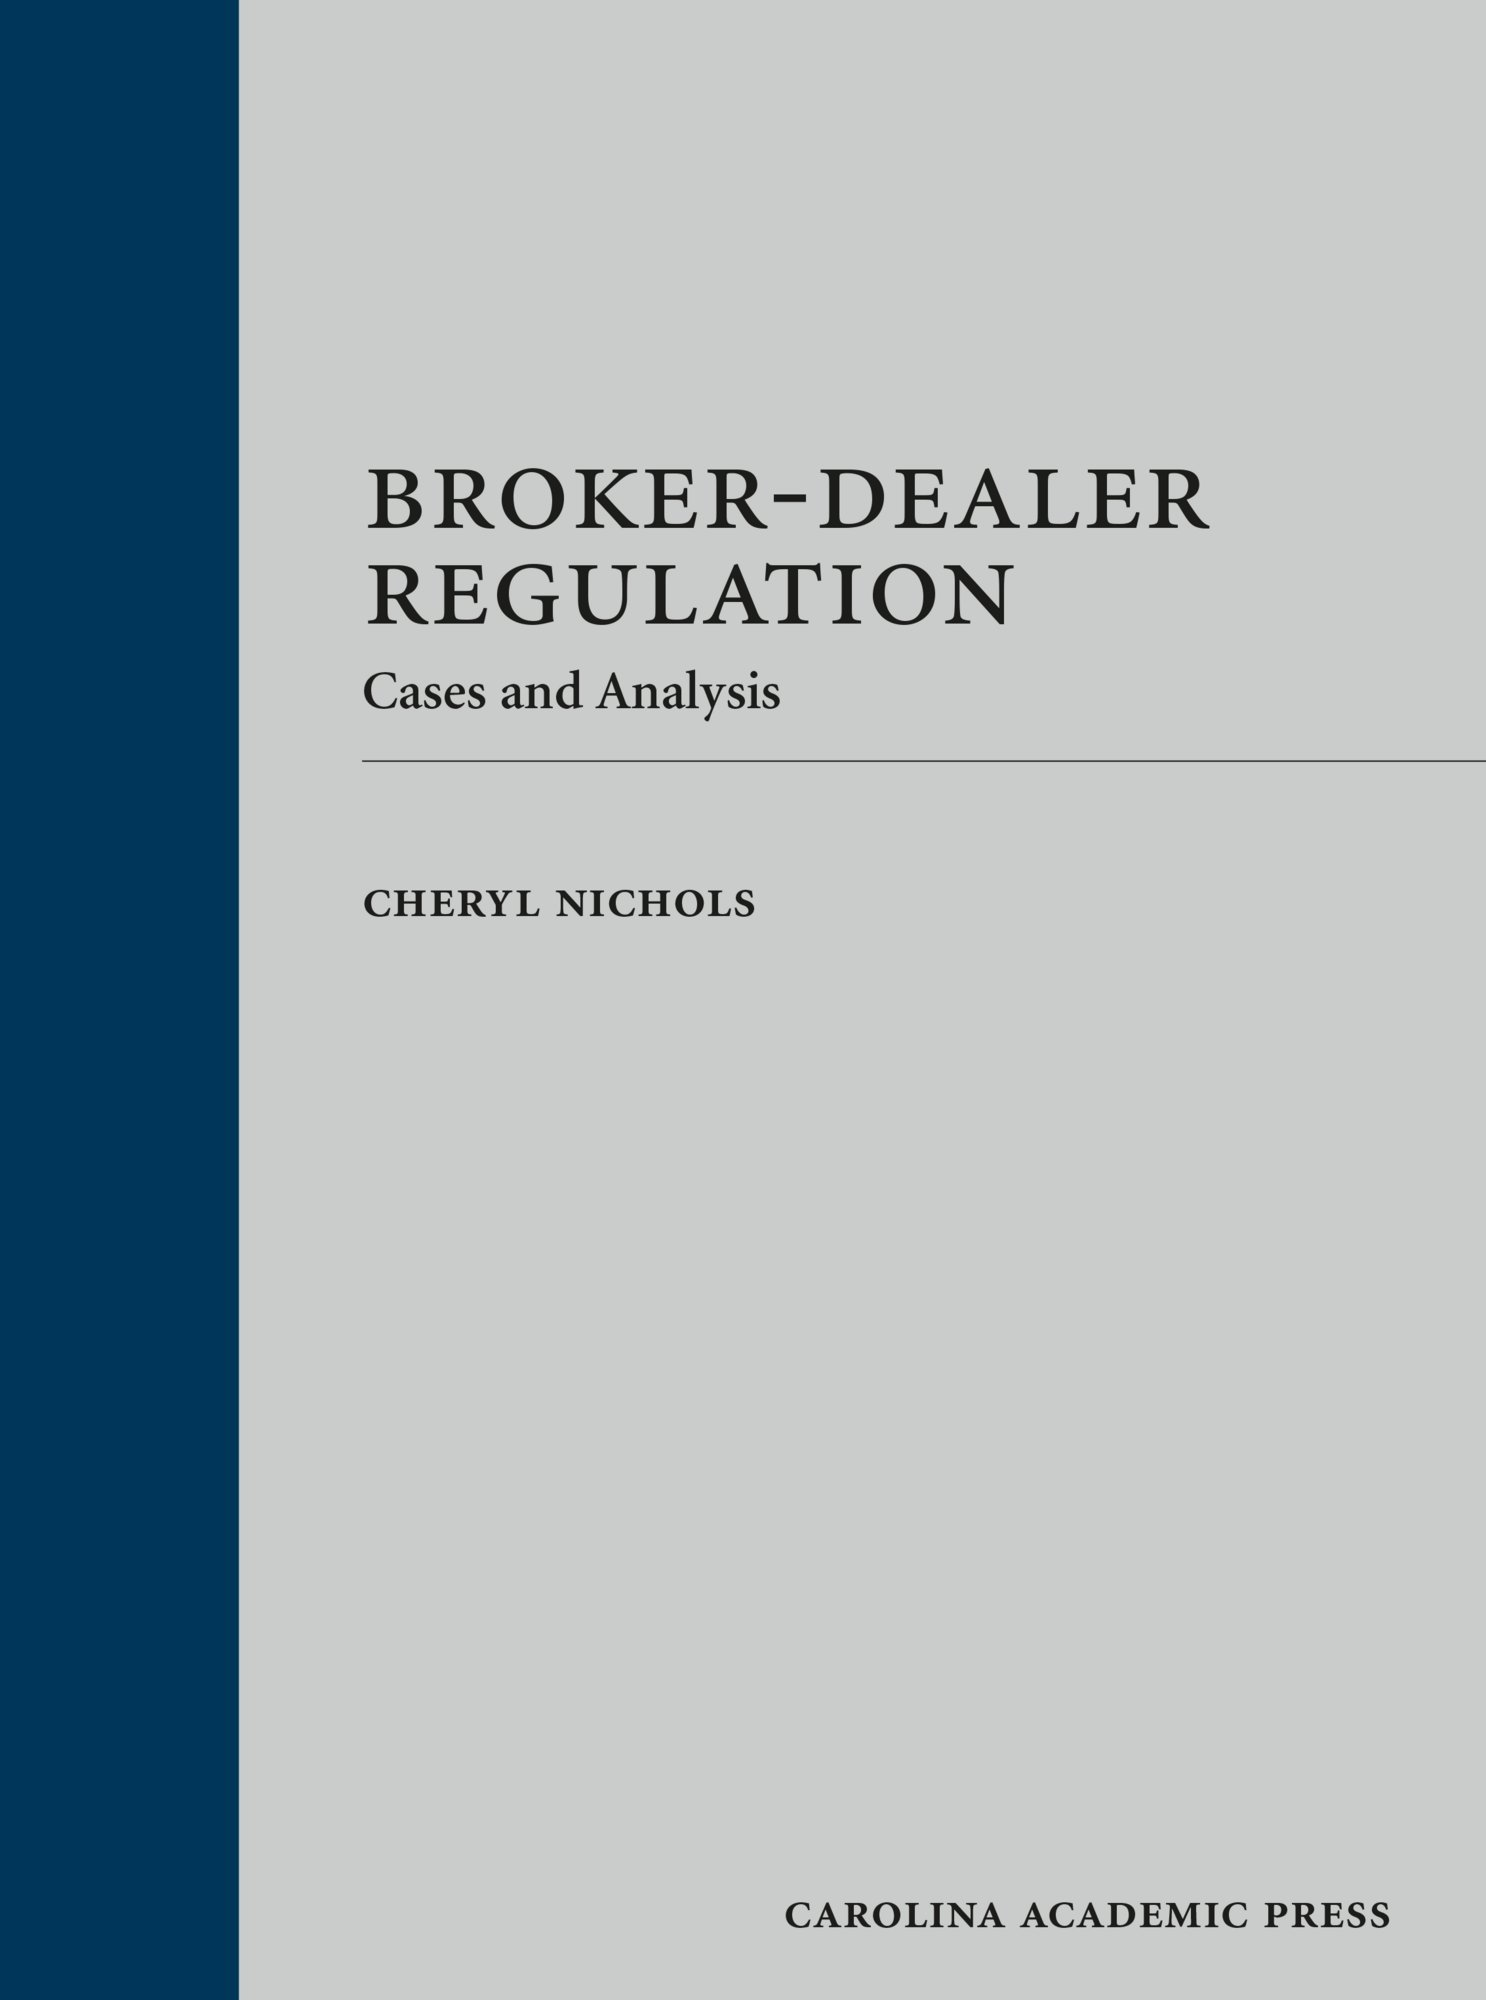 Broker-Dealer Regulation: Cases and Analysis